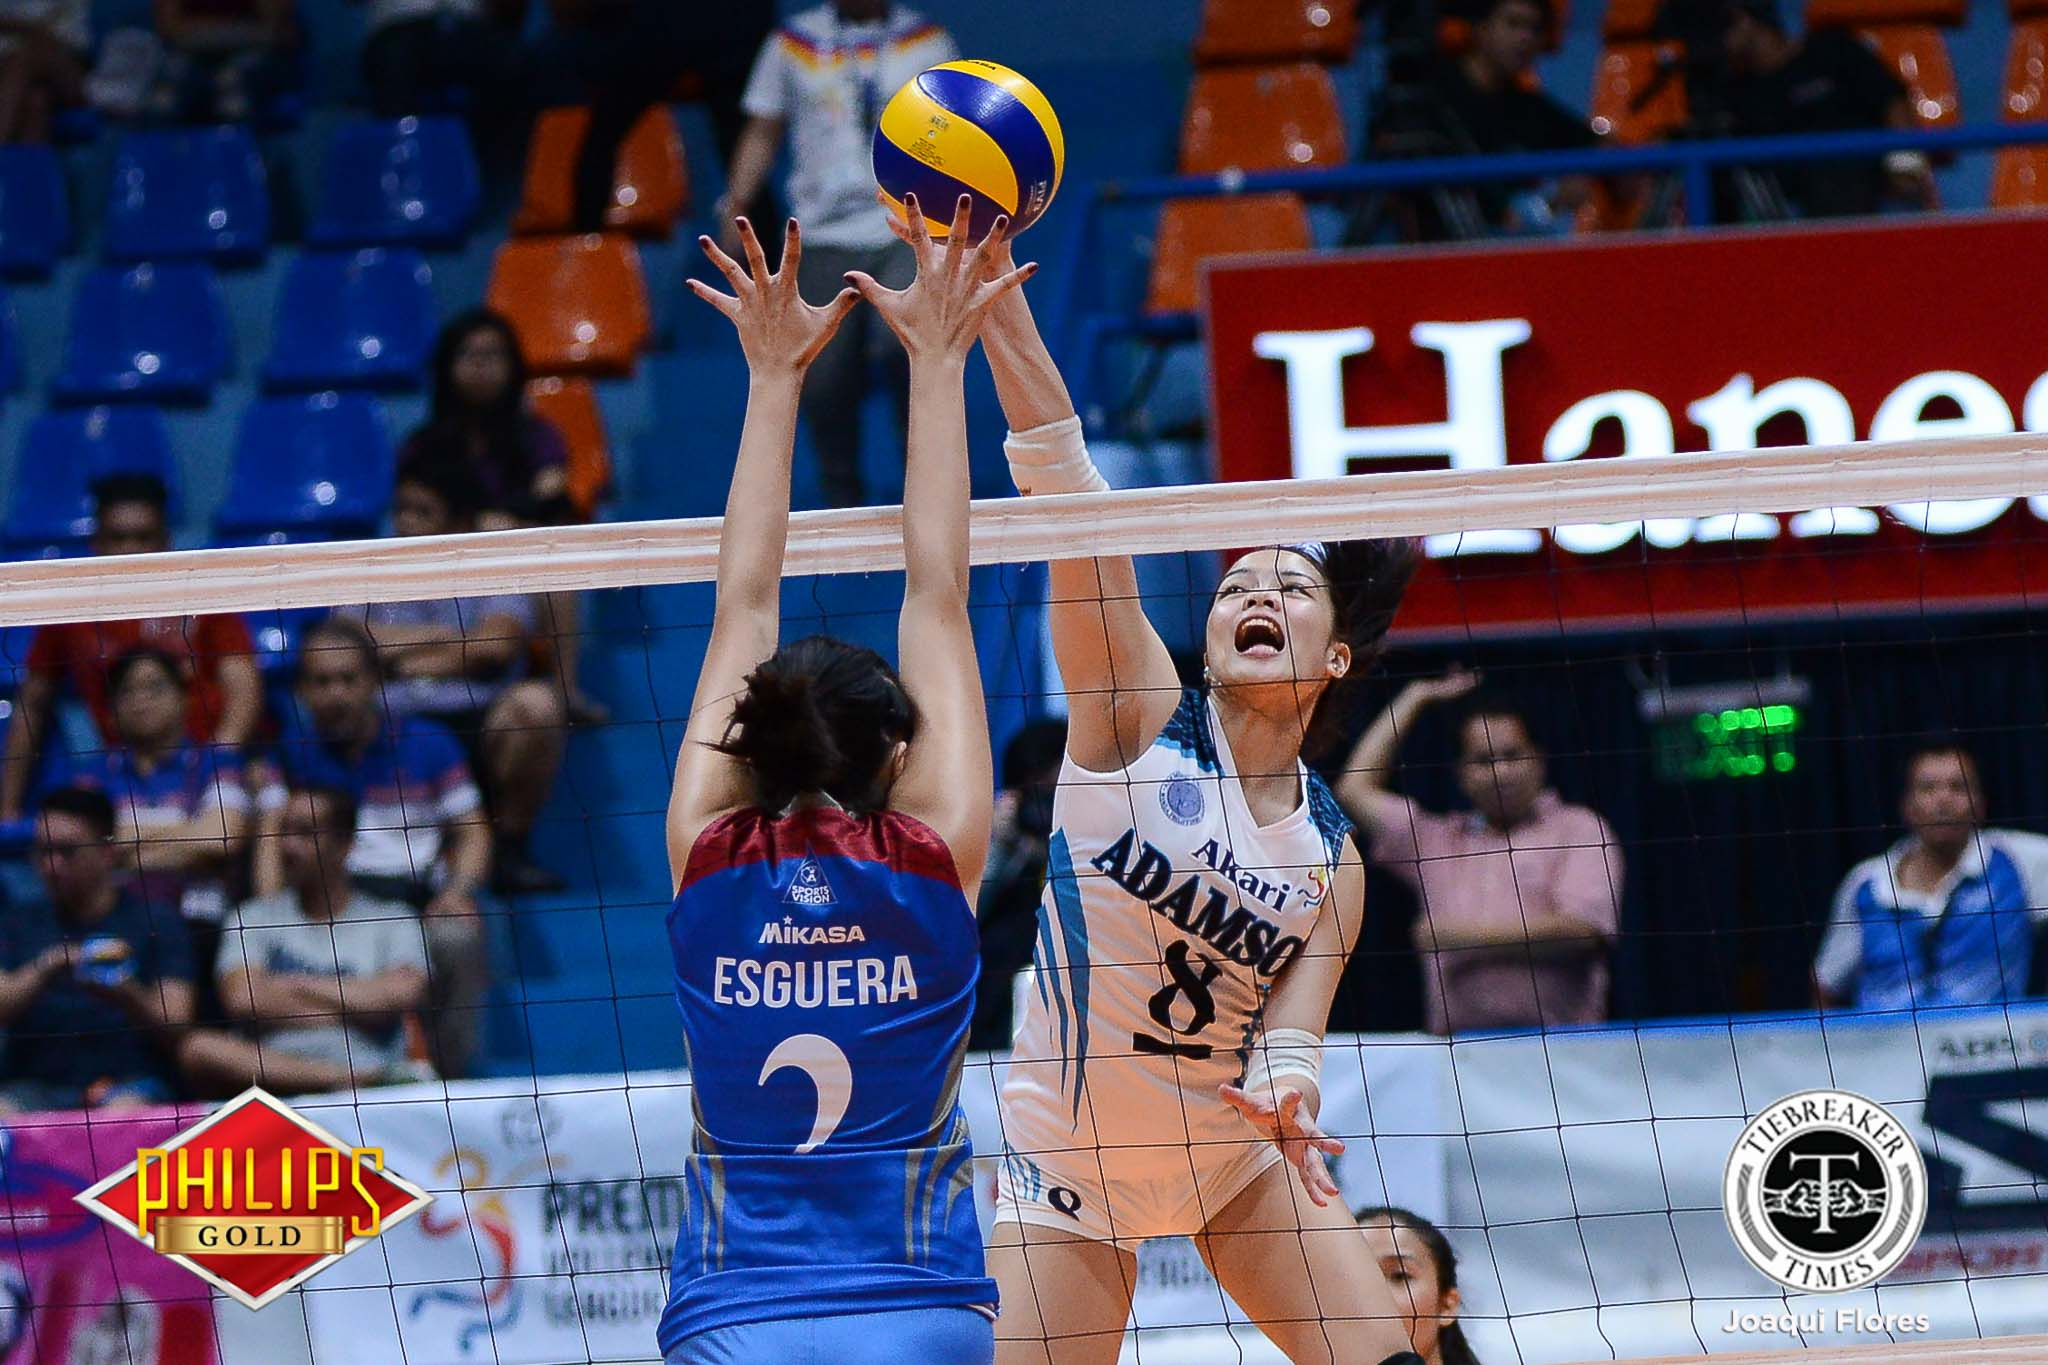 Philippine Sports News - Tiebreaker Times Adamson scores second straight win after dominant outing against Arellano AdU AU News PVL Volleyball  Thang Ponce Obet Javier Jovelyn Prado Jema Galanza Fhen Emnas Arellano Women's Volleyball Airess Padda Adamson Women's Volleyball 2017 PVL Women's Collegiate Conference 2017 PVL Season